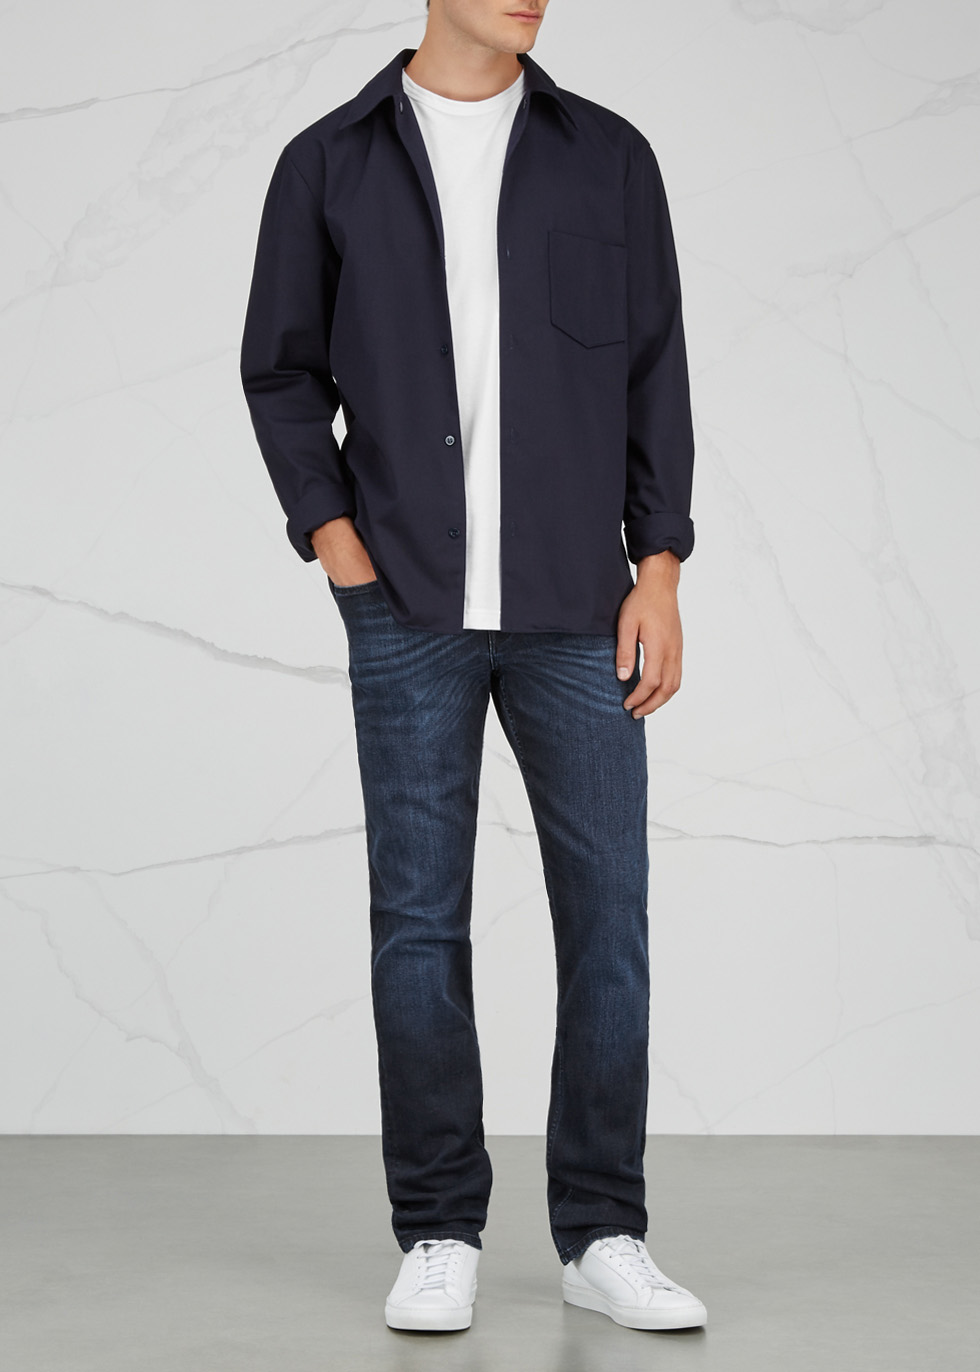 Slimmy Luxe Performance slim-leg jeans - 7 For All Mankind